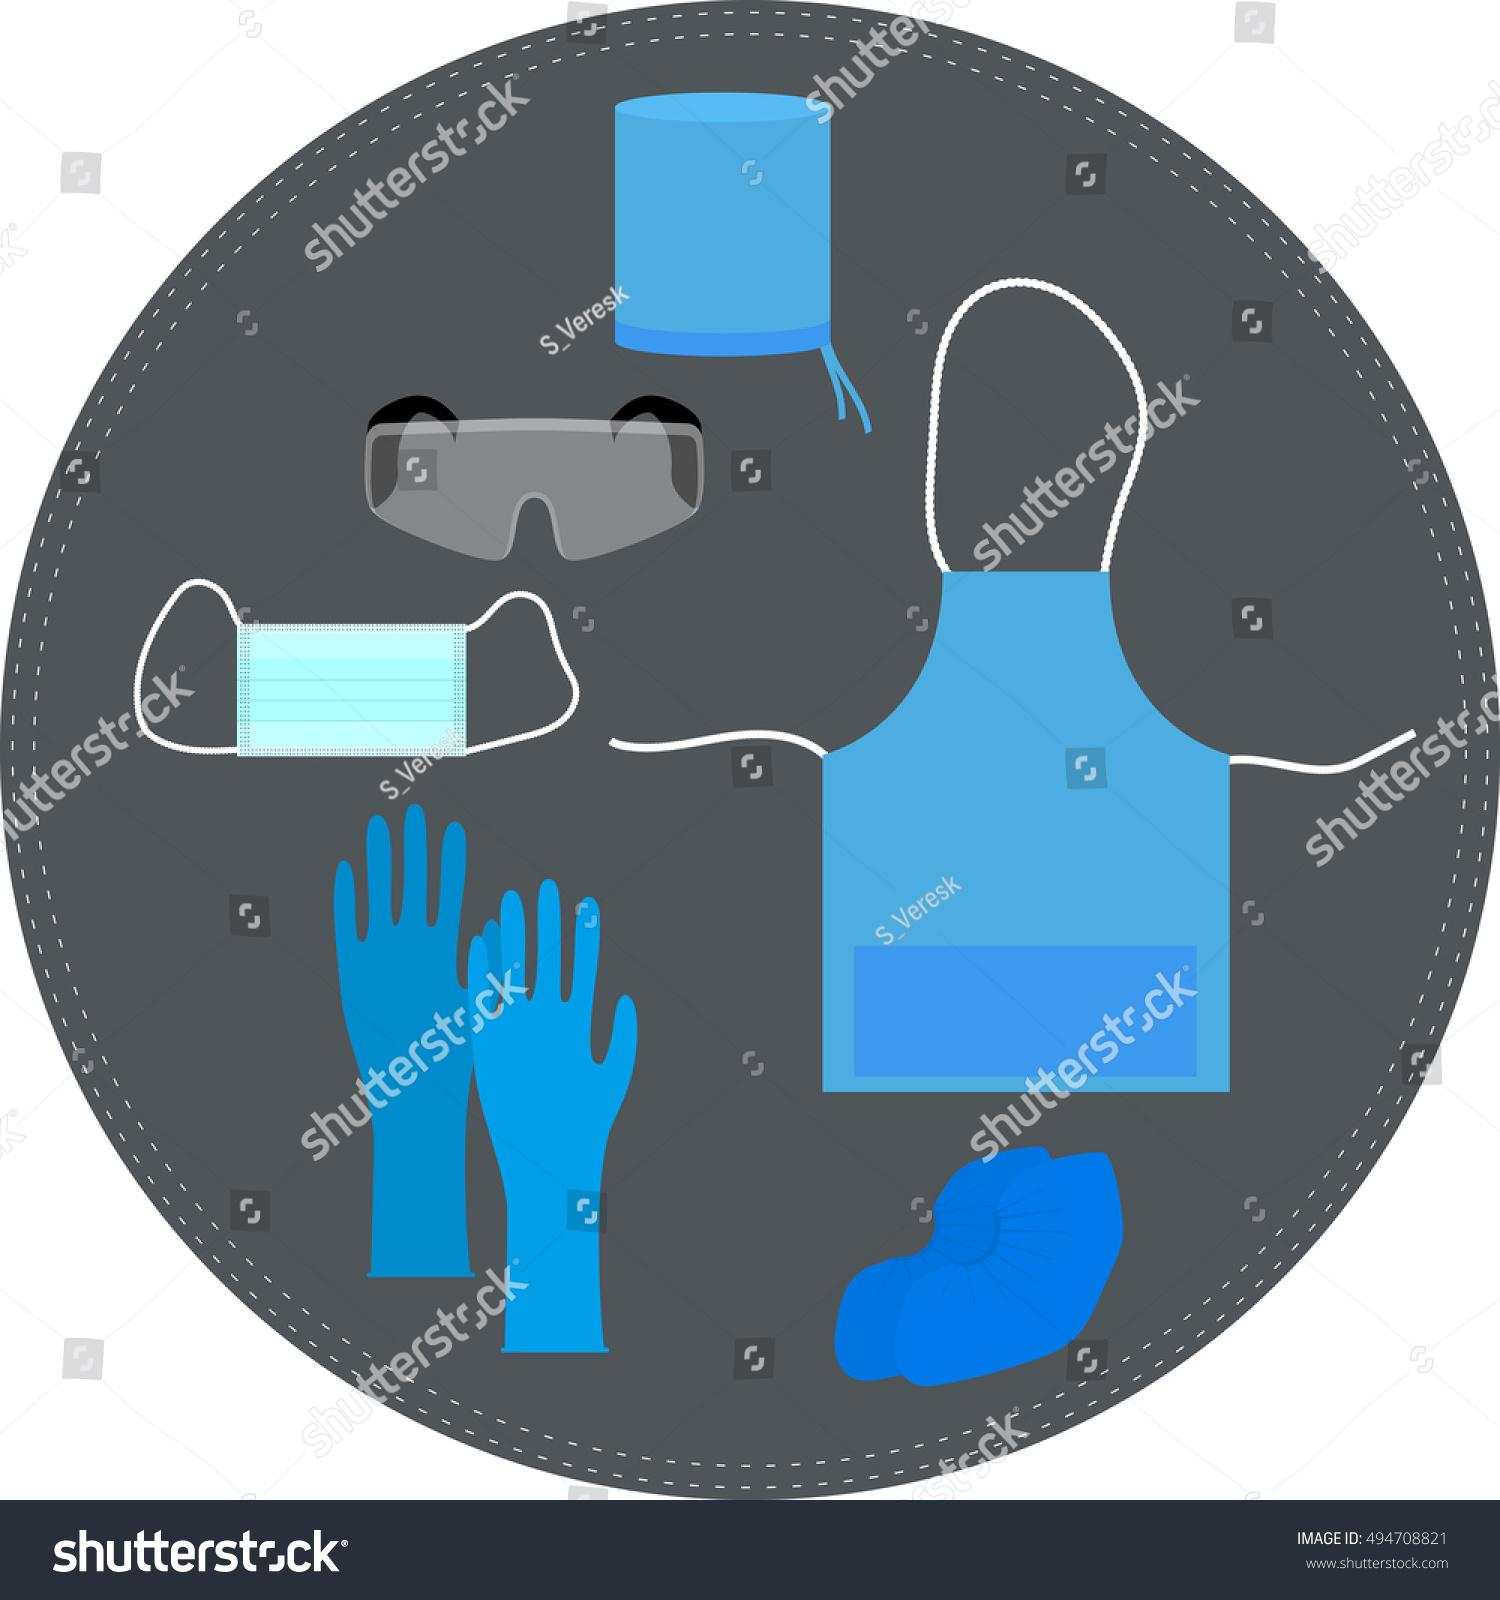 stock-vector-medical-clothing-and-accessories-for-working-494708821___20200407090819___.jpg